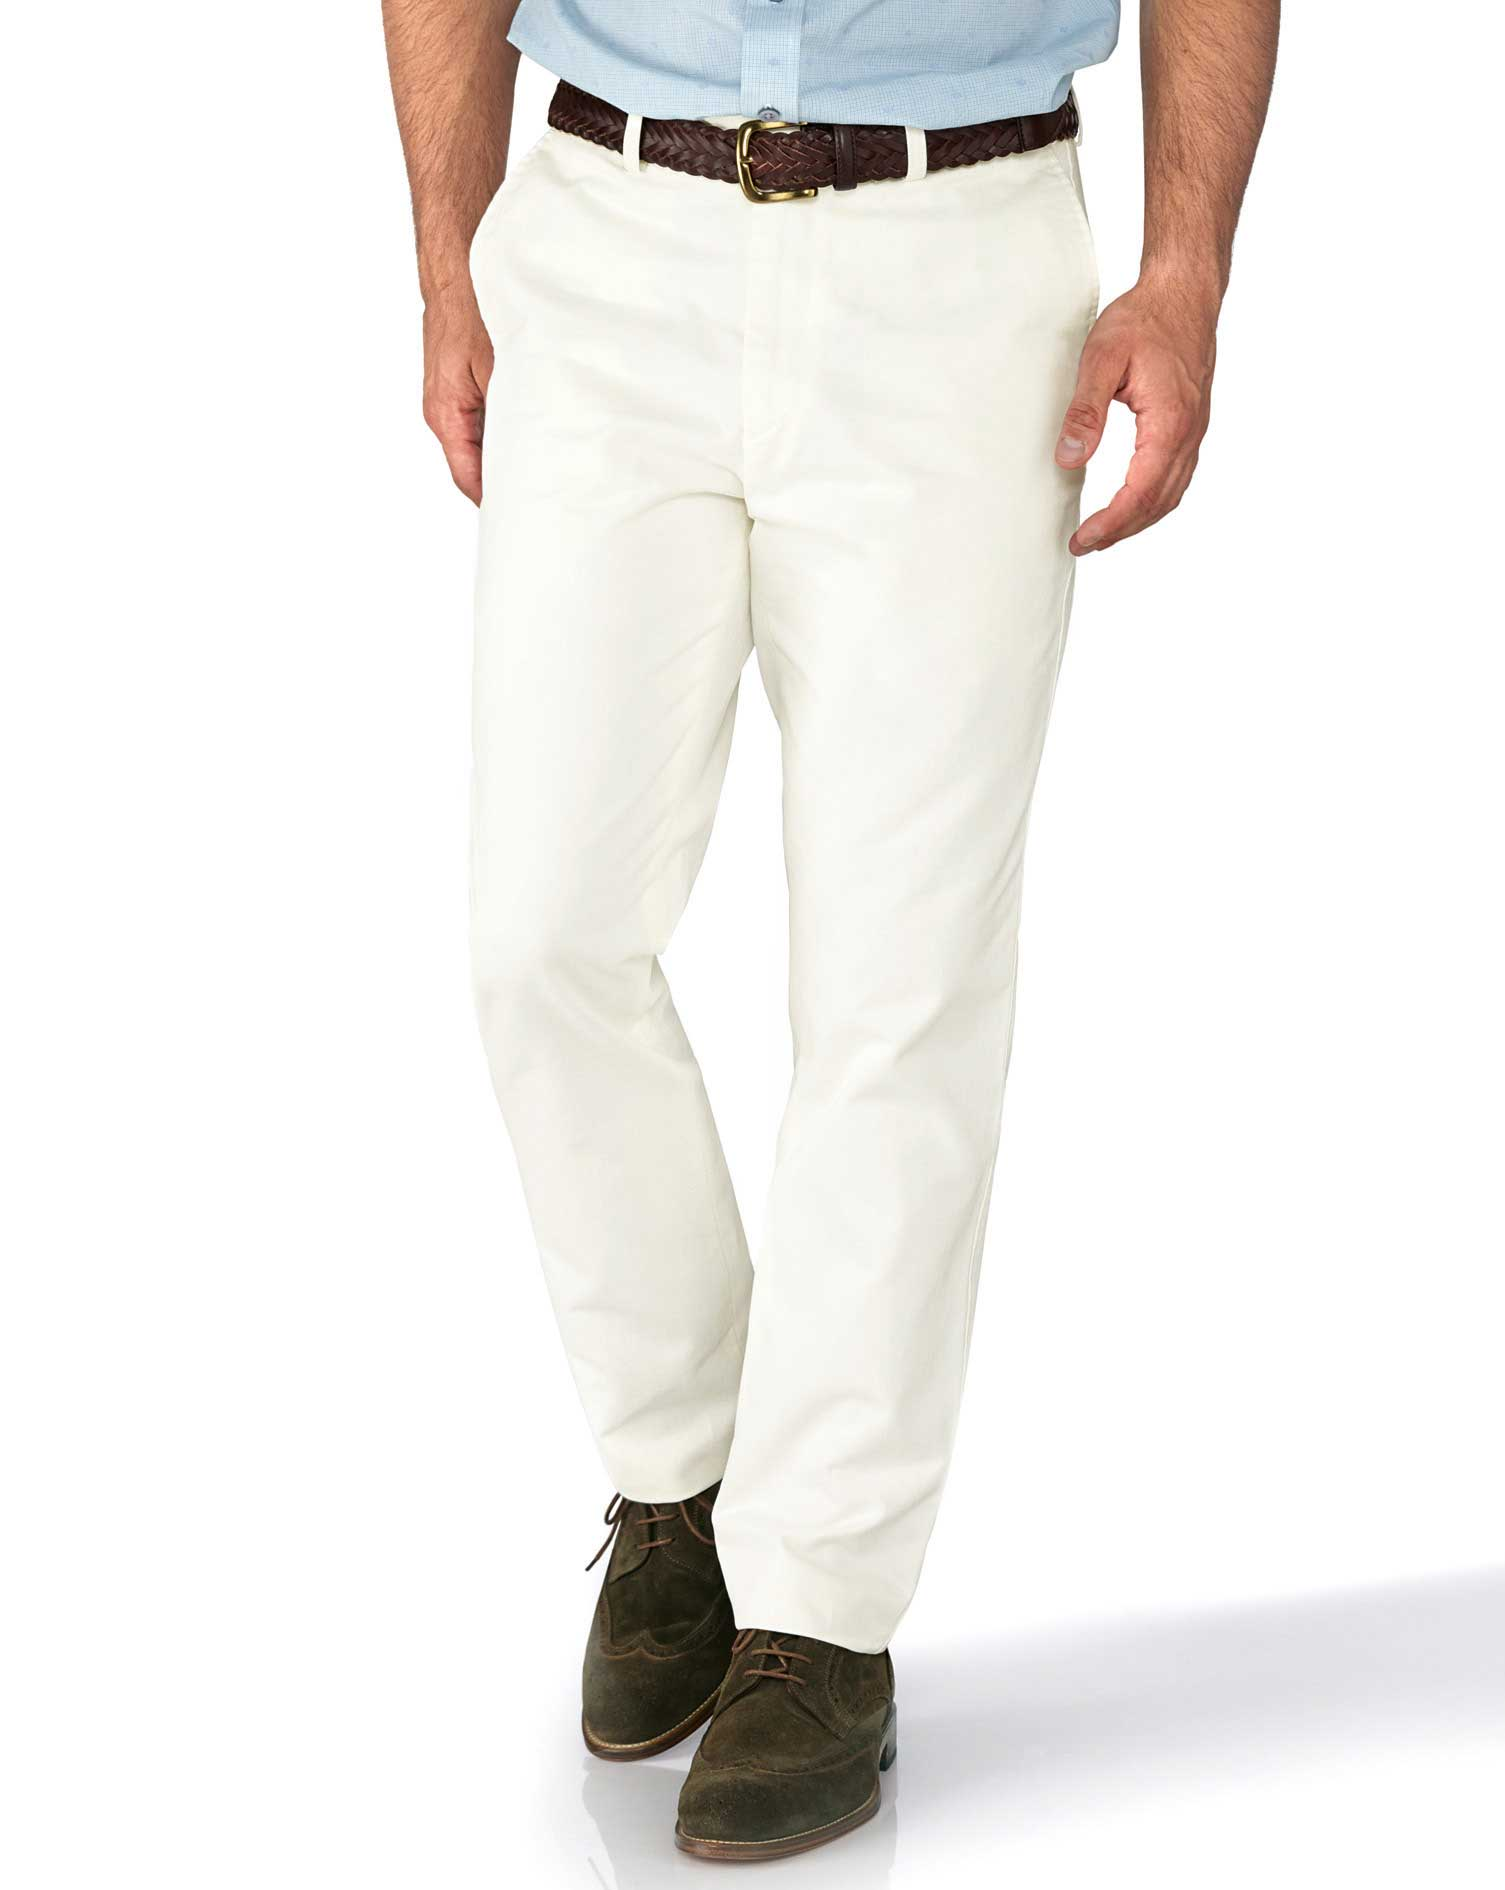 White Slim Fit Flat Front Weekend Cotton Chino Trousers Size W36 L34 by Charles Tyrwhitt